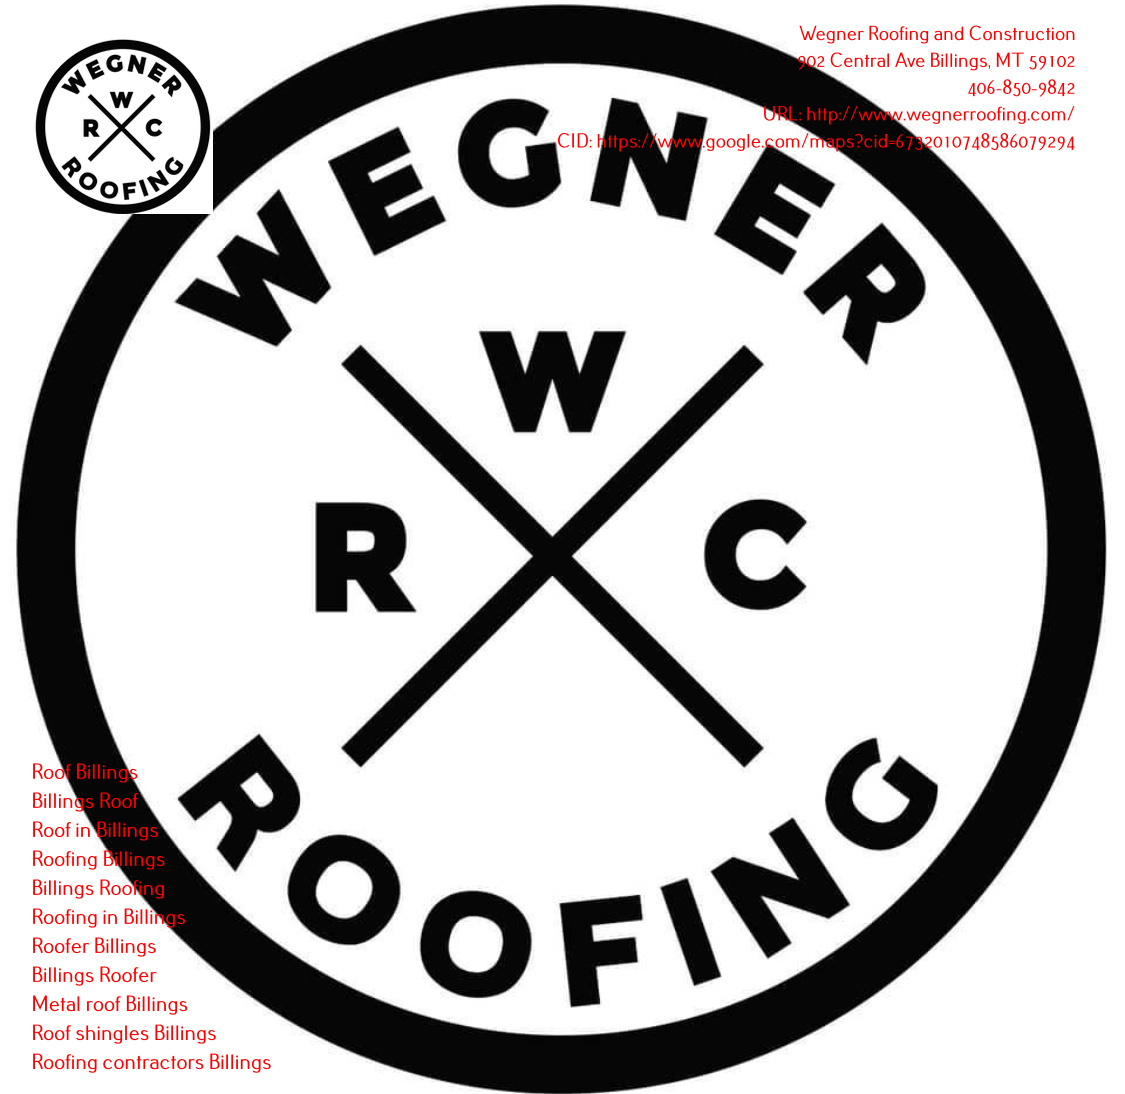 Wegner Roofing and Construction Photo